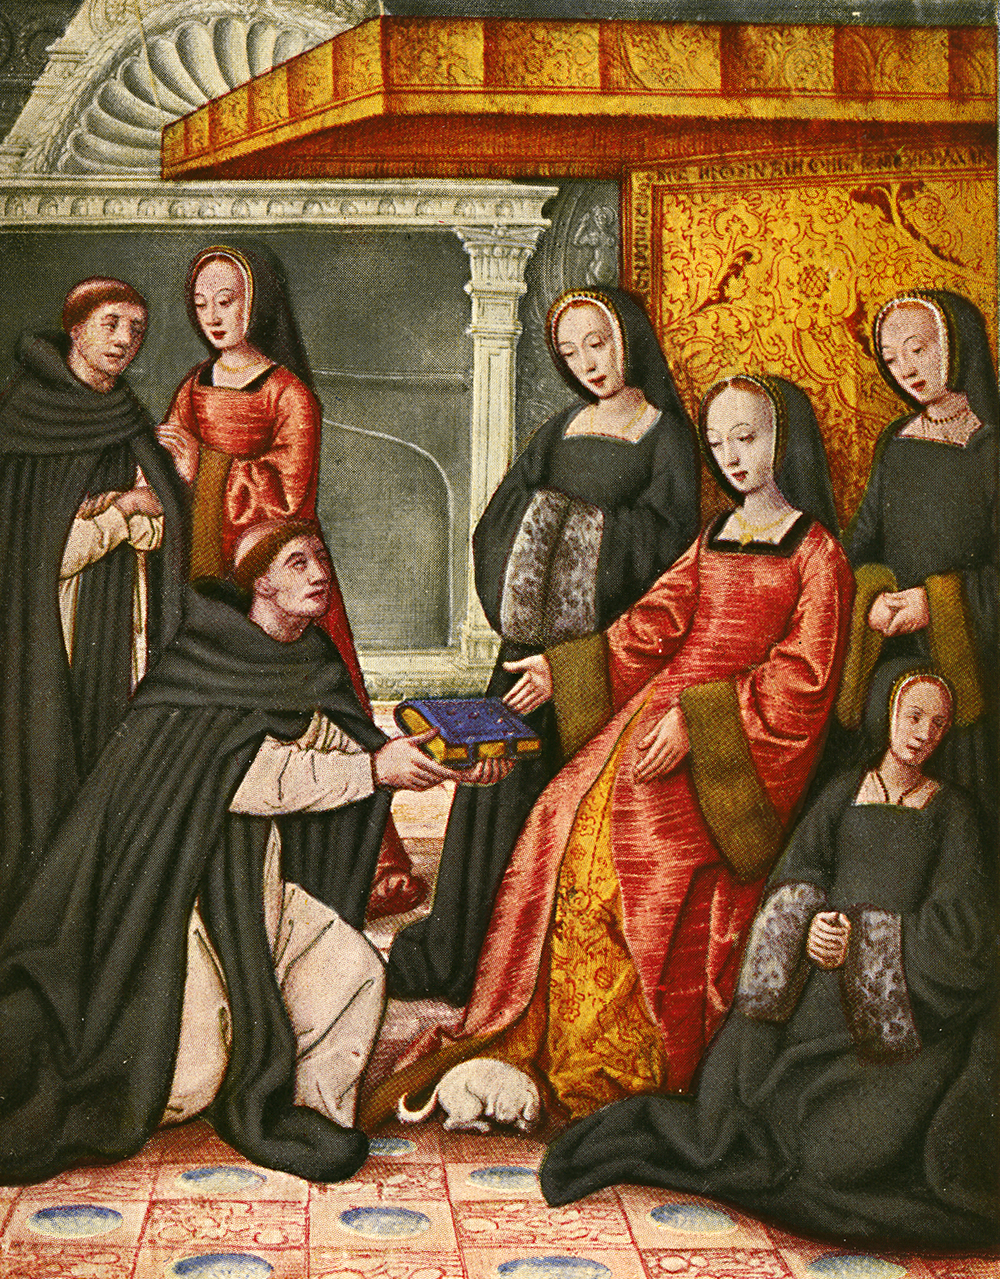 1500s (before 1514) - France.Anne of Brittany (1477-1514) - Musée Dobrée